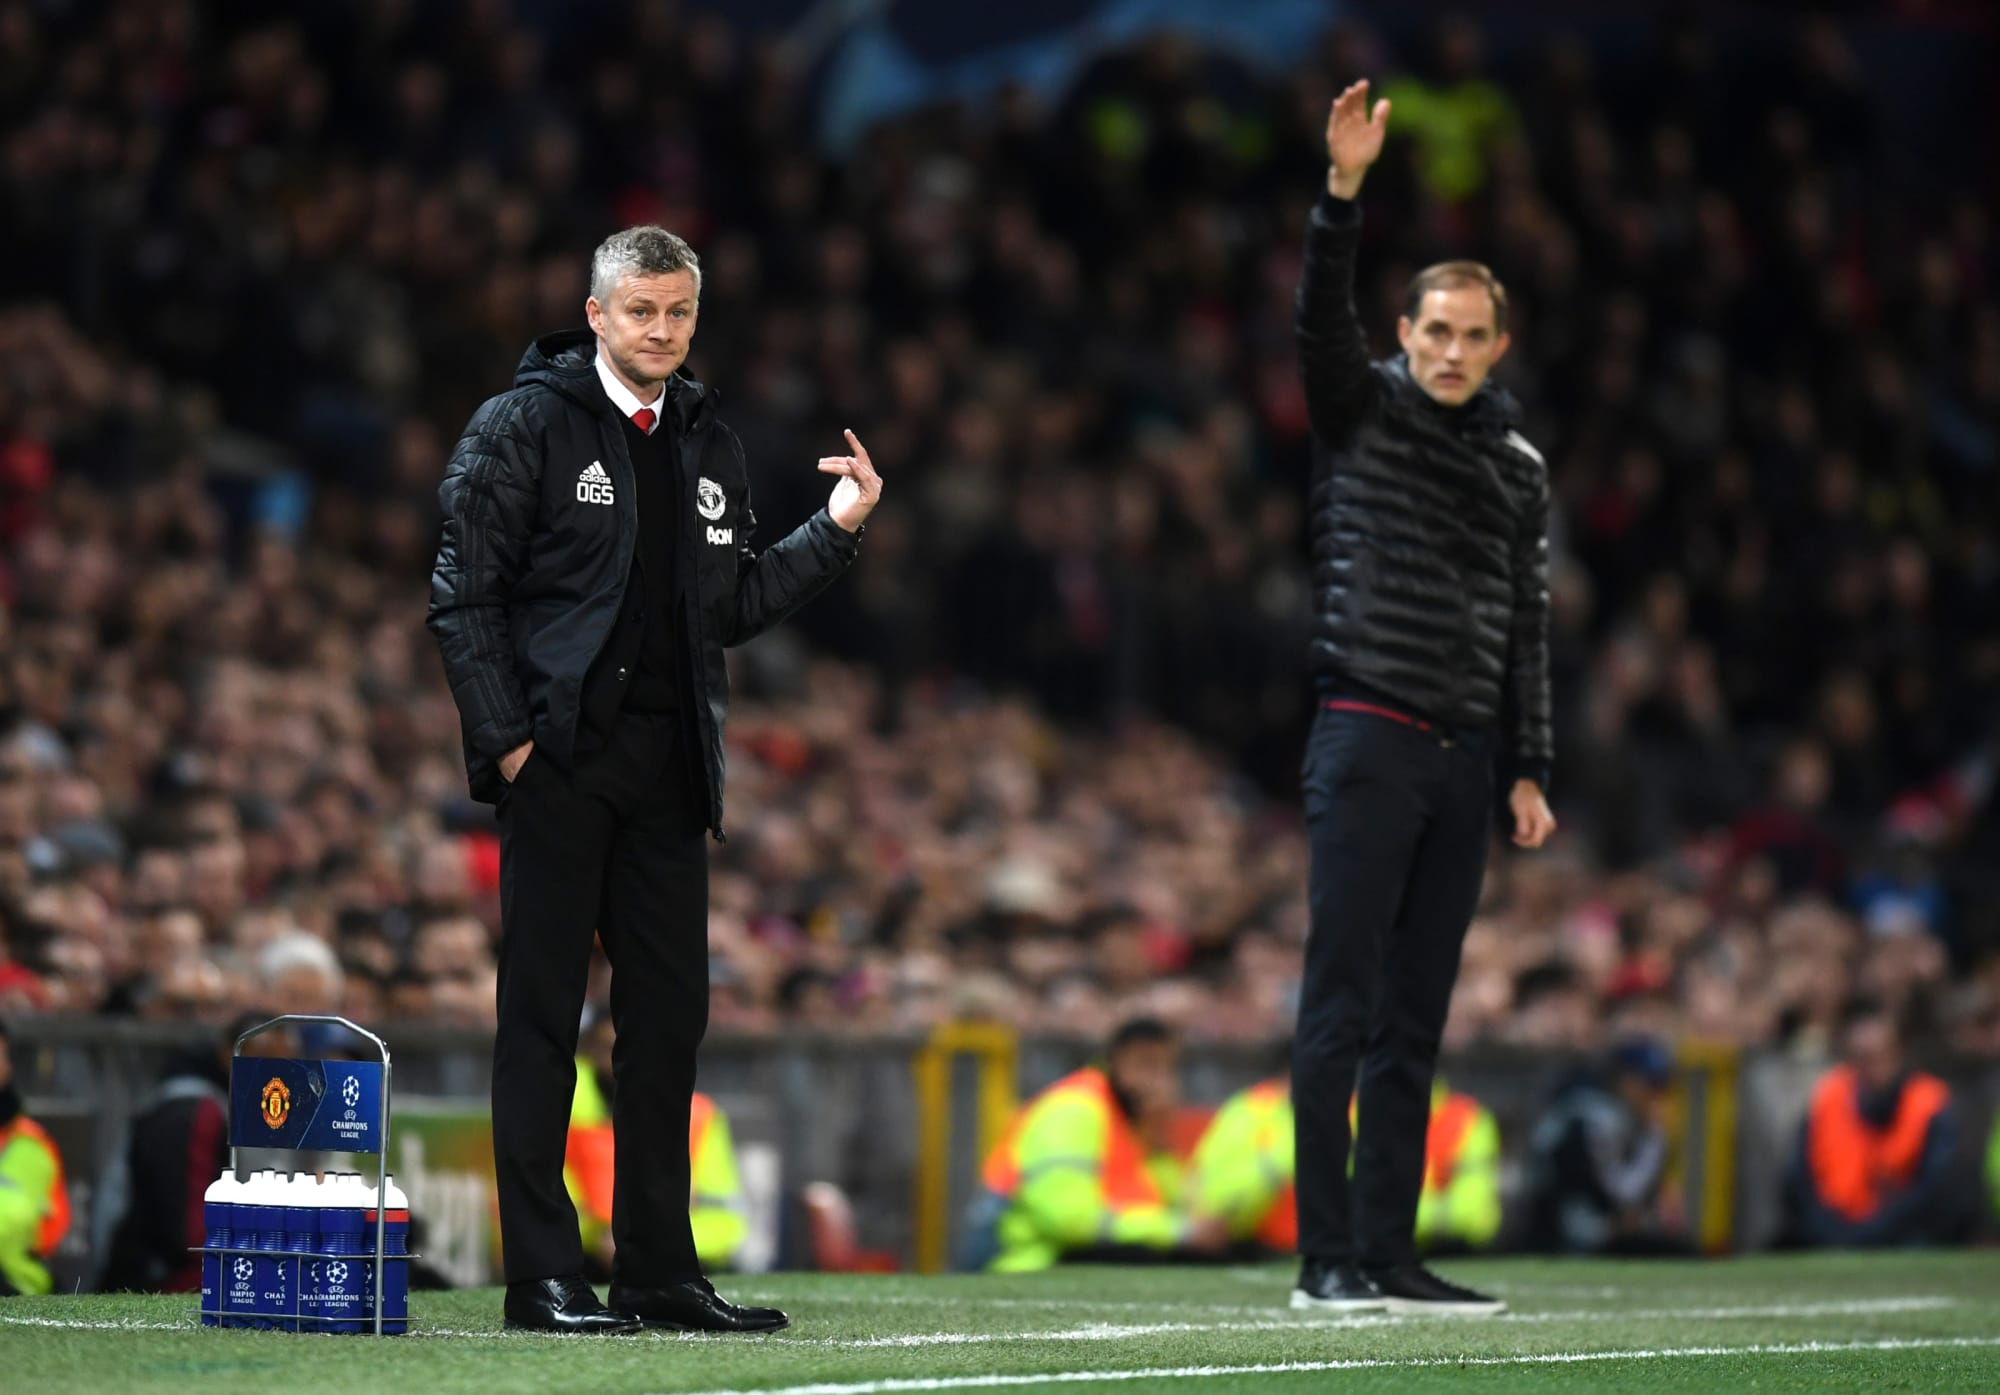 The situation at Manchester United is eerily similar to Chelsea